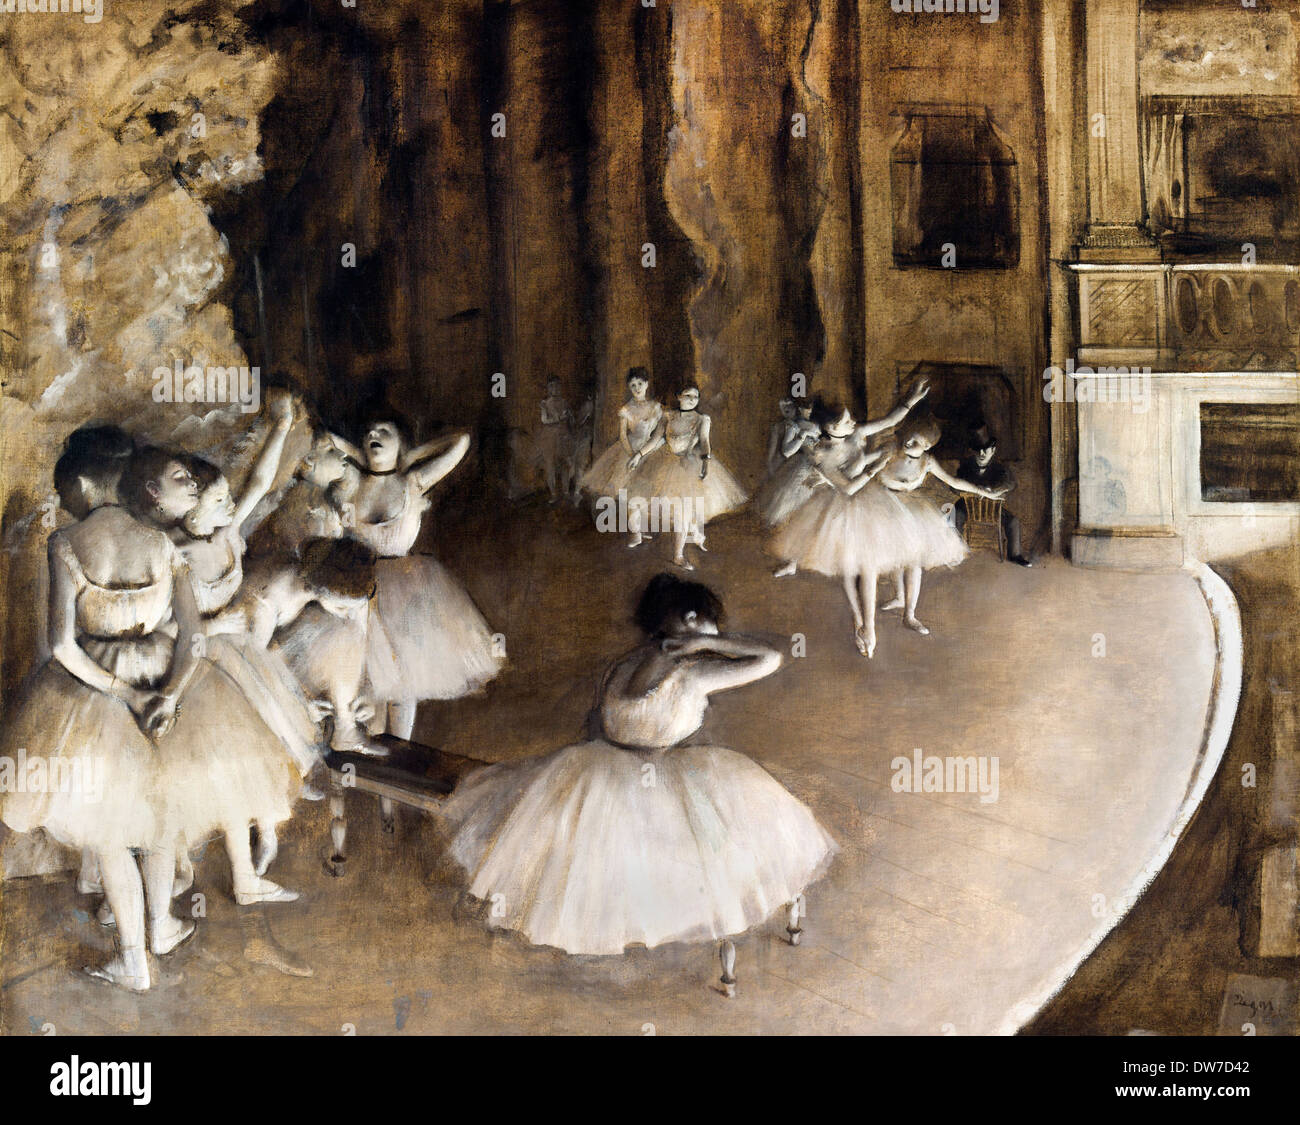 Edgar Degas, Ballet Rehearsal on Stage 1874 Oil on canvas. Musée d'Orsay, Paris, France. - Stock Image